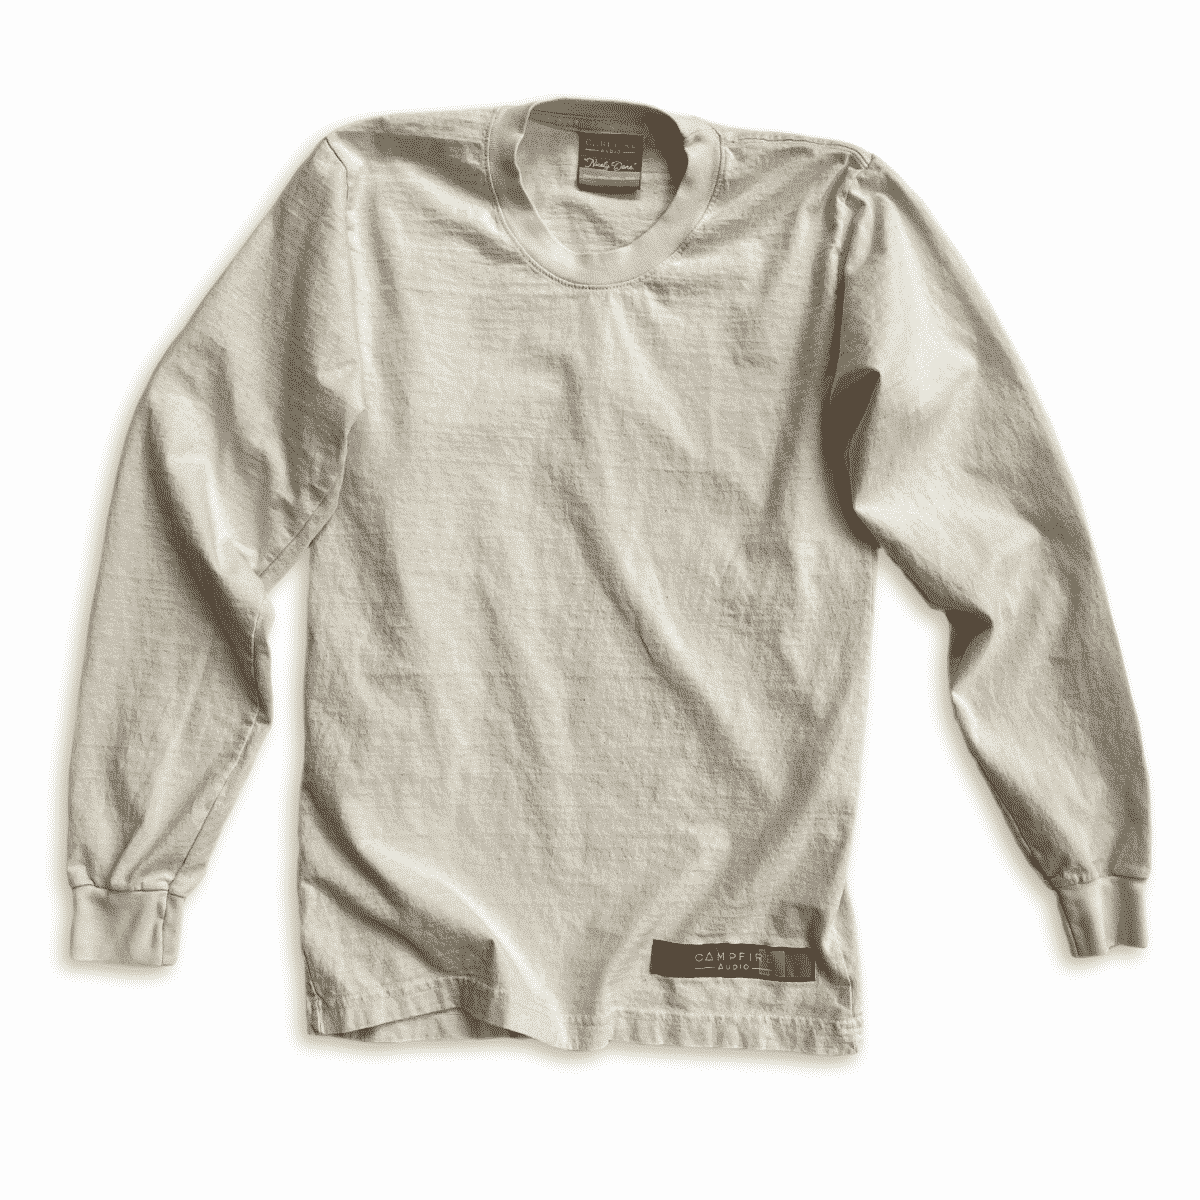 Recycled Cotton Long Sleeve T-Shirt in Natural Cotton with Campfire Audio Color Block Logo Tag